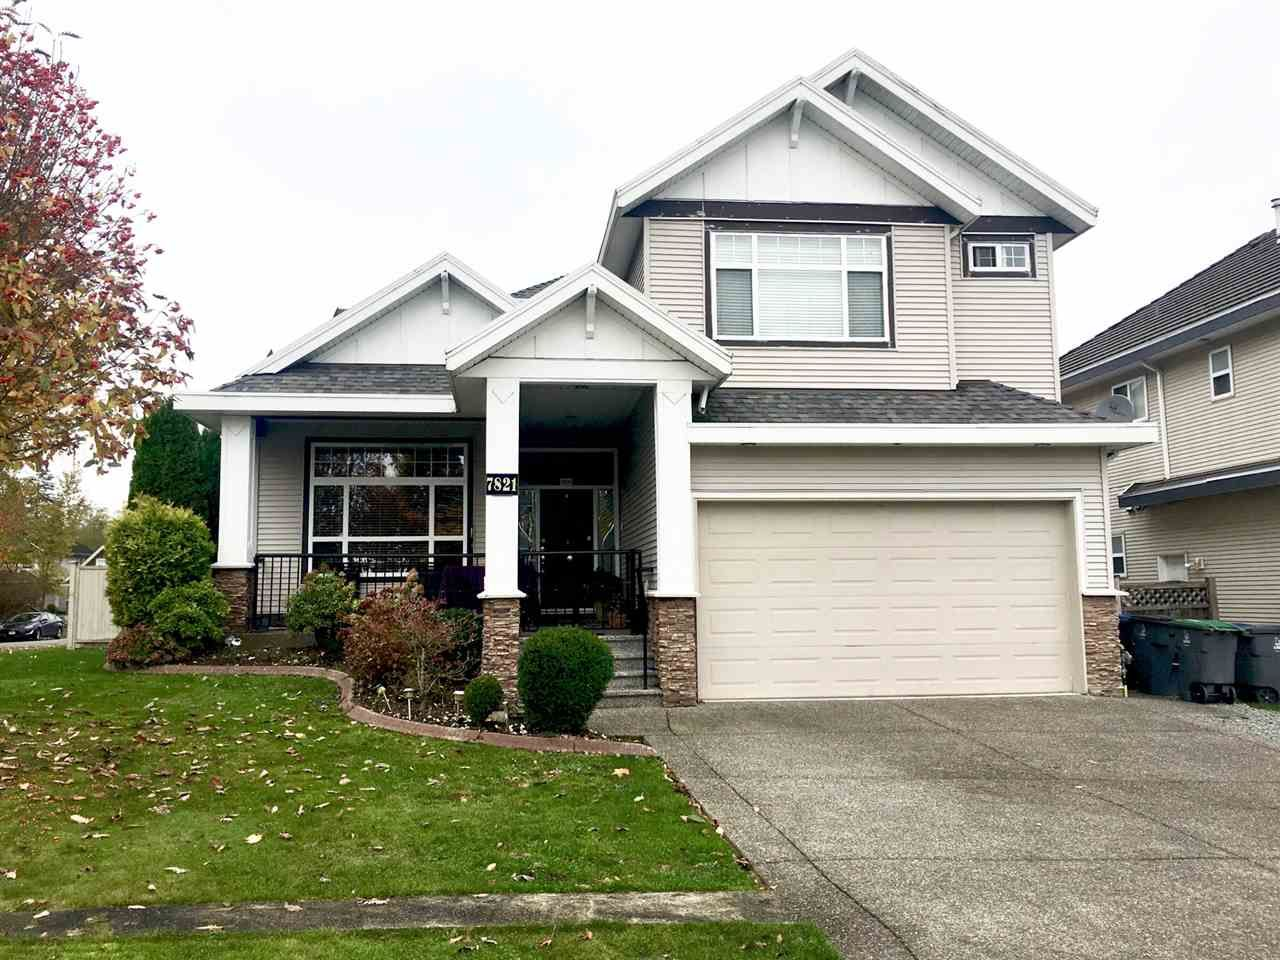 Main Photo: 7821 147A Street in Surrey: East Newton House for sale : MLS®# R2160878